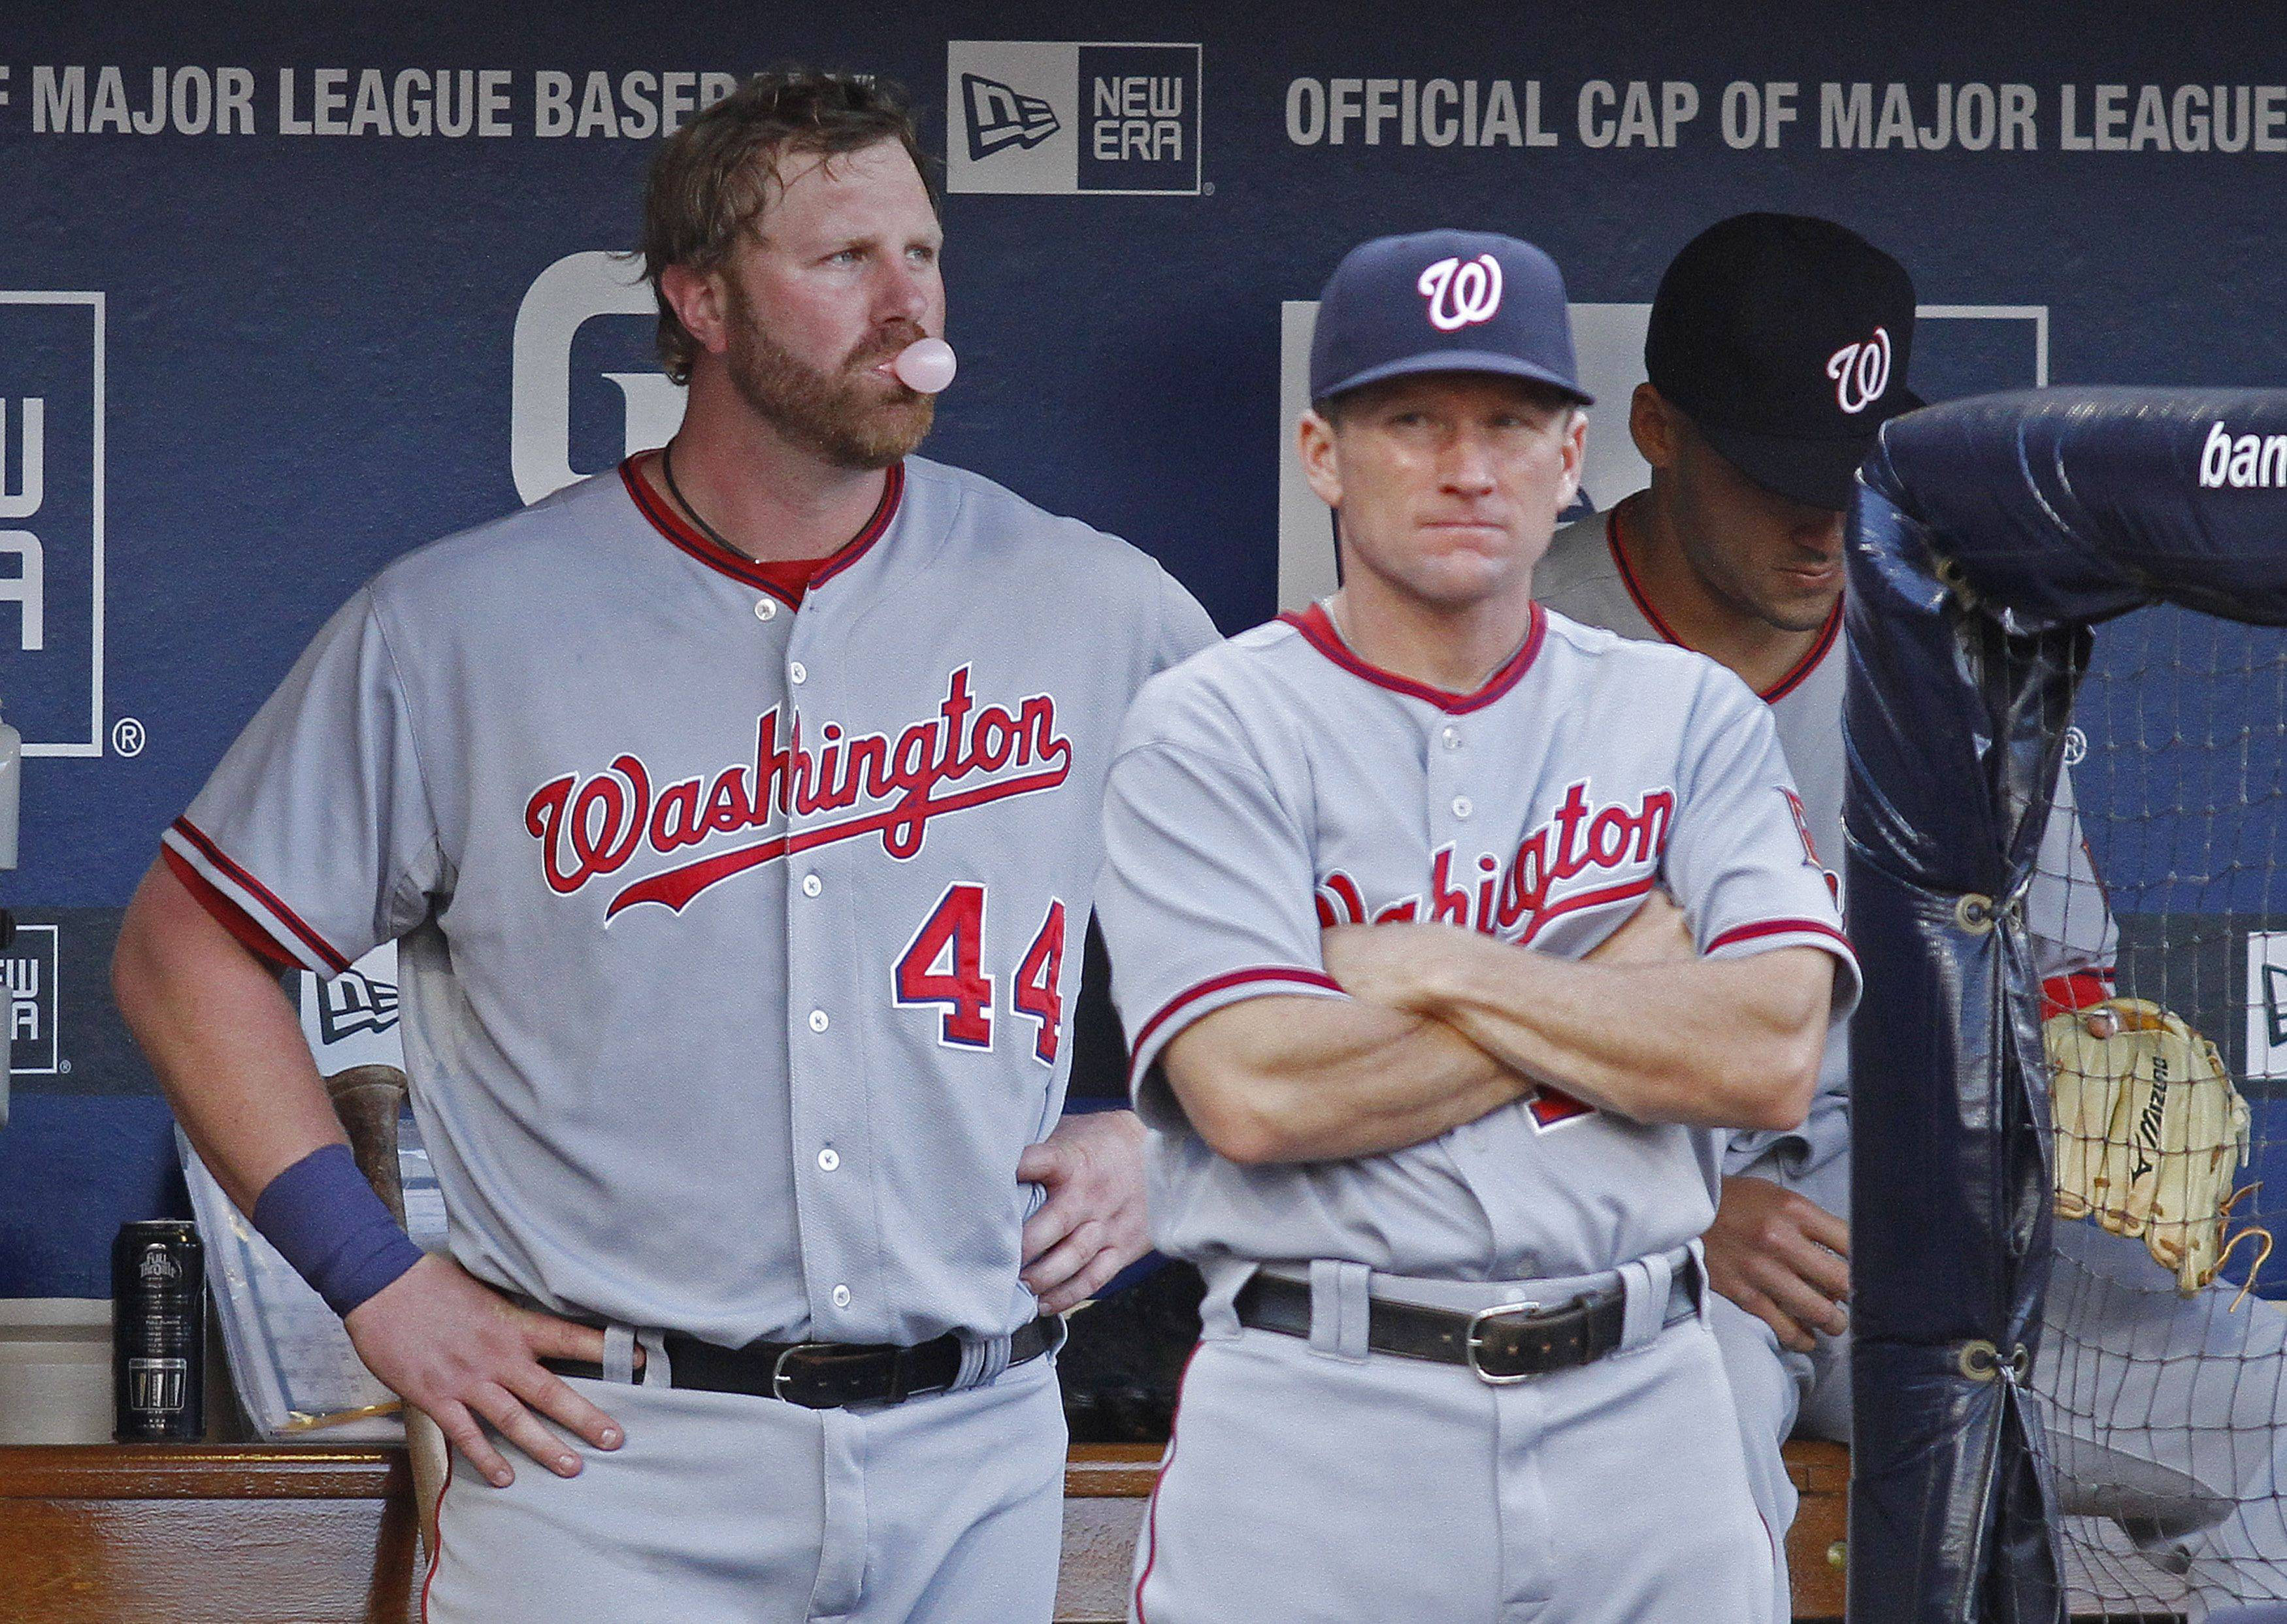 Washington Nationals Adam Dunn, left, and batting coach Rick Eckstein, right, look on after Dunn struck out against the San Diego Padres.